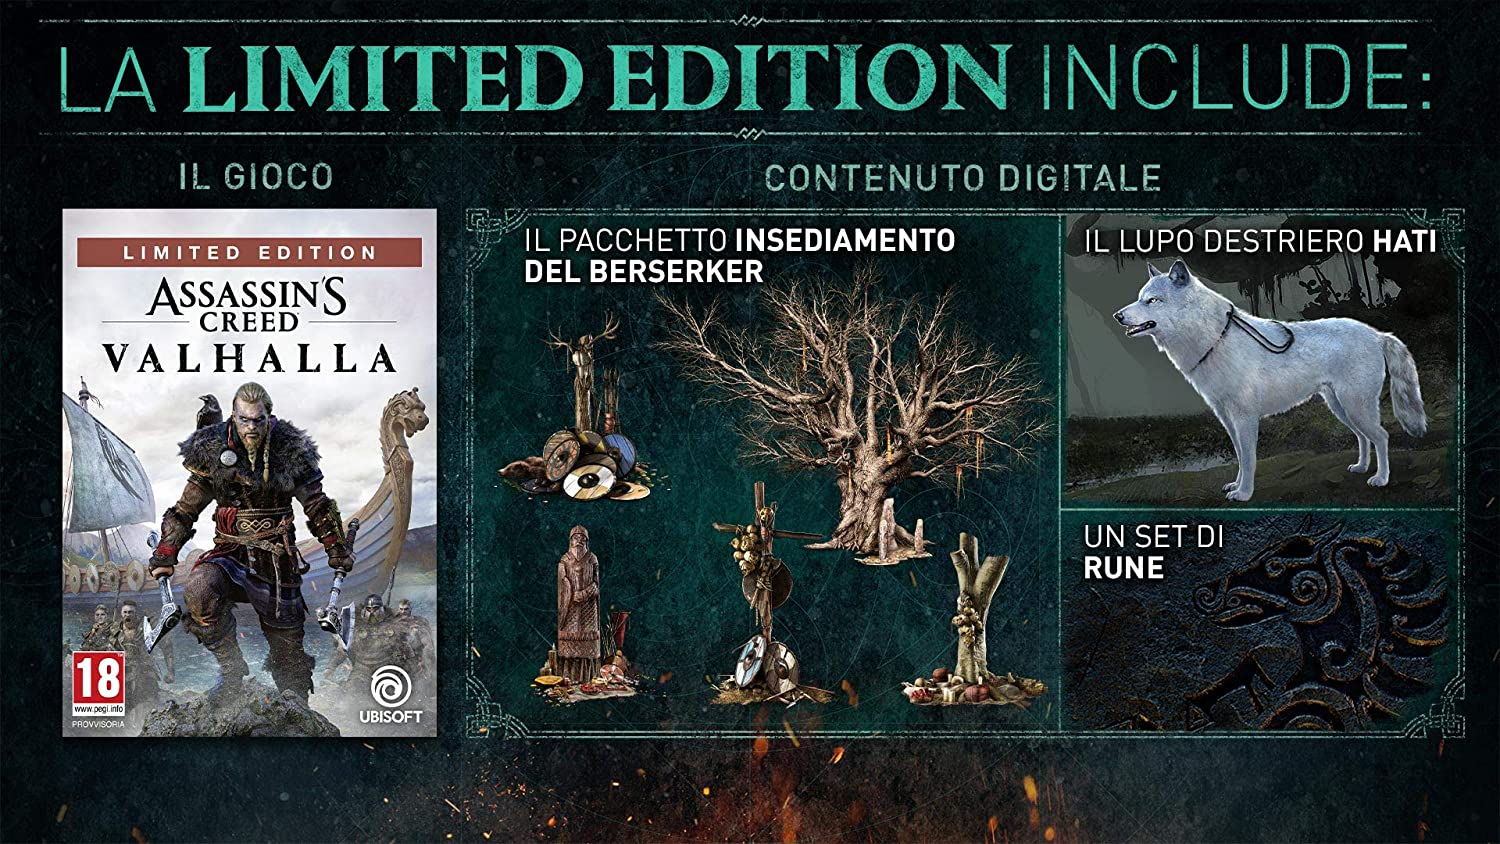 Assassin's Creed - Limited Edition